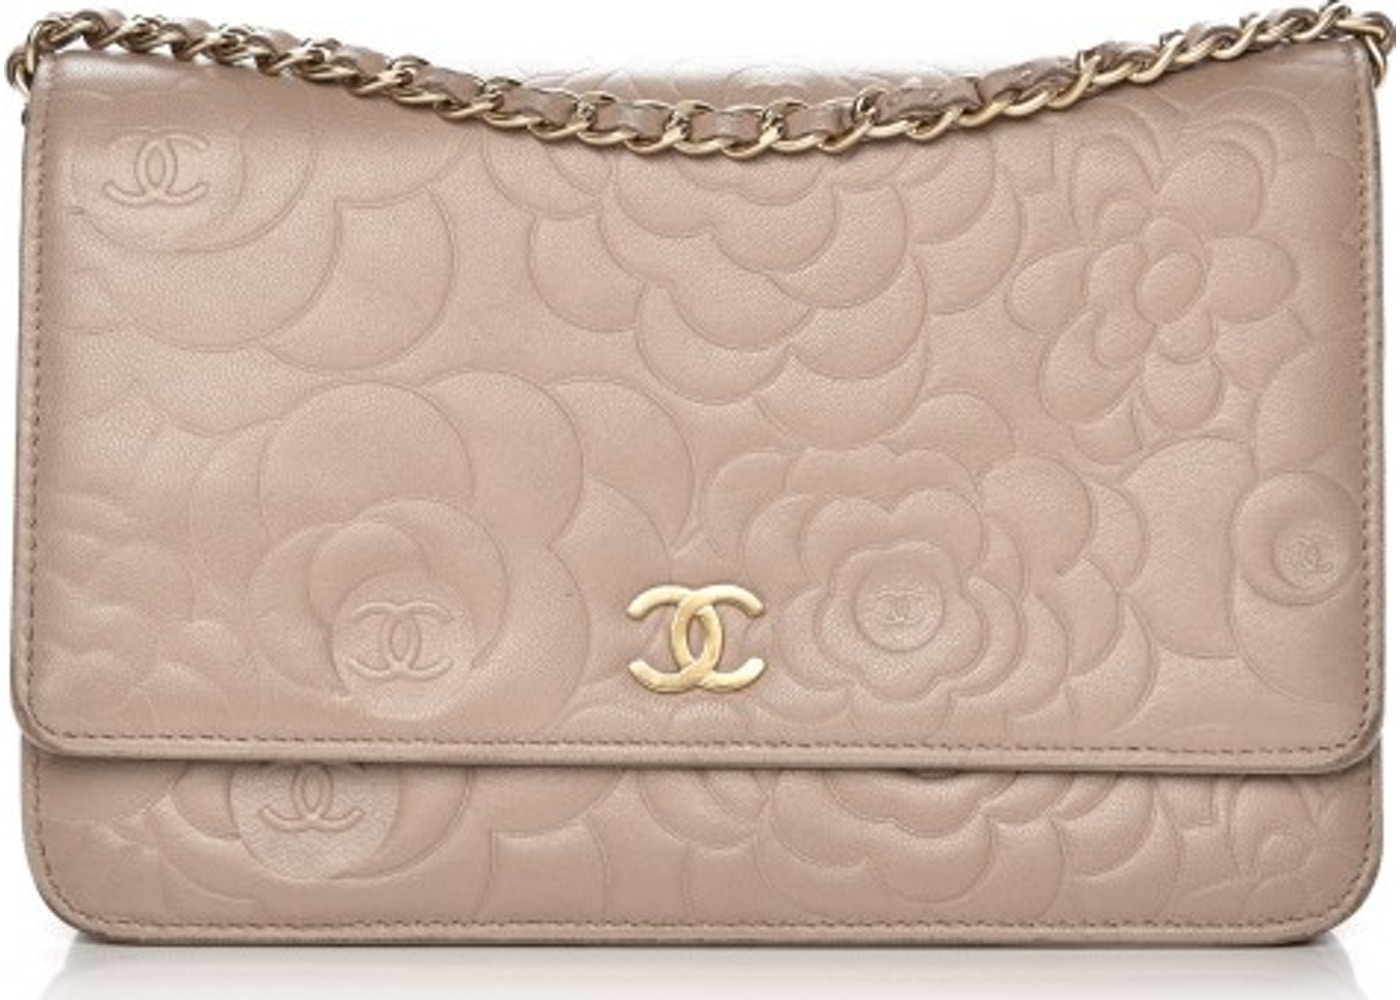 77e32d12488 Chanel Wallet On Chain Camellia Embossed Beige. Camellia Embossed Beige